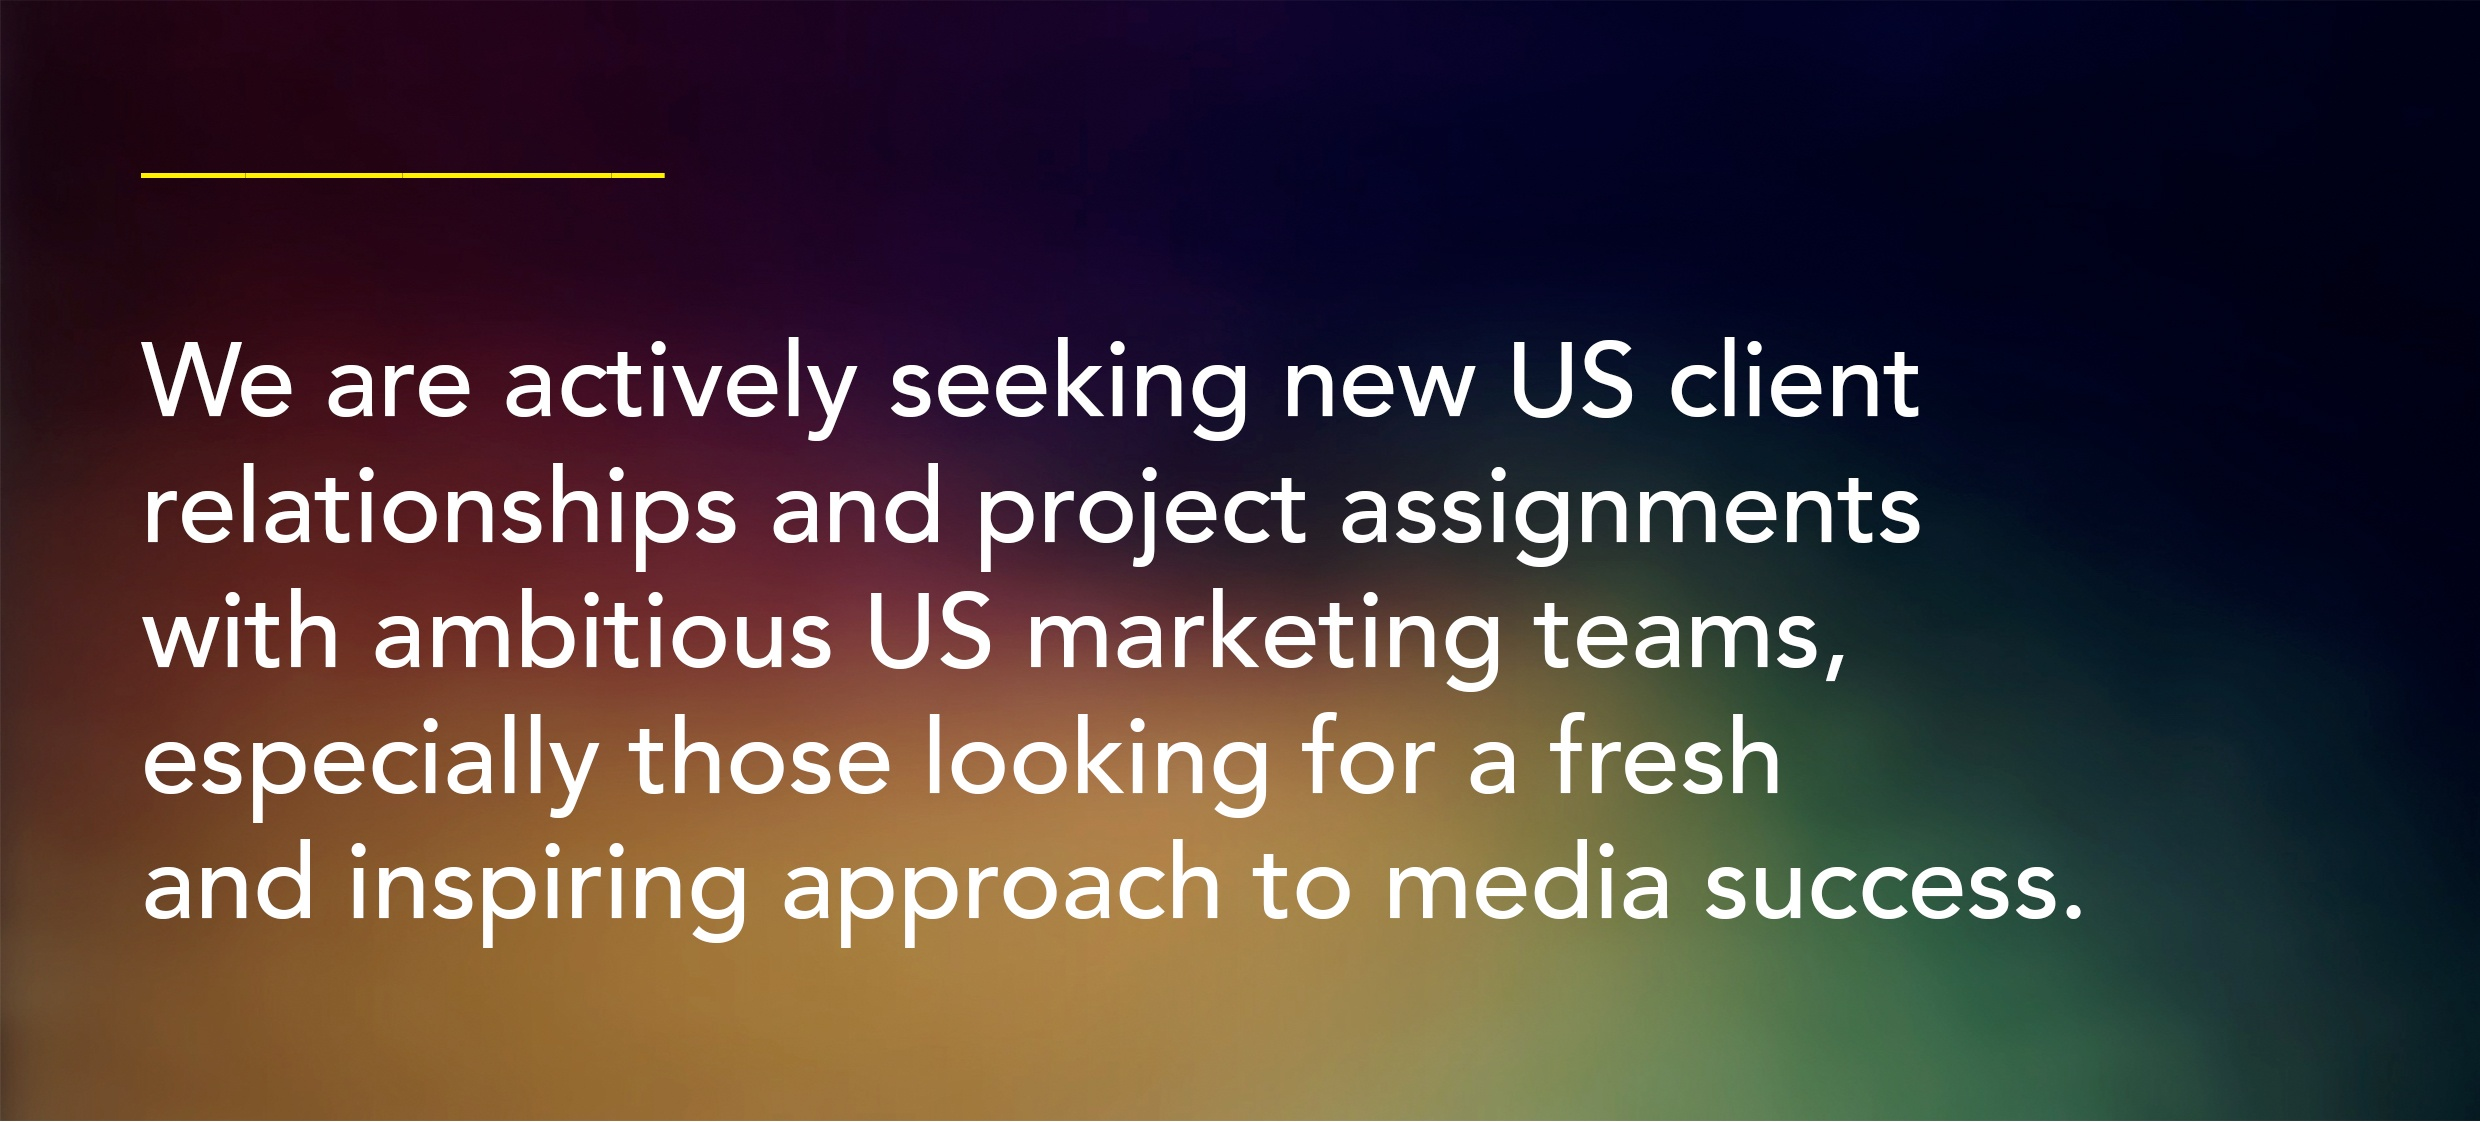 Call outWe are actively seeking new US client relationships and project assignments with ambitious US marketing teams, especially those looking for a fresh and inspiring approach to media success.